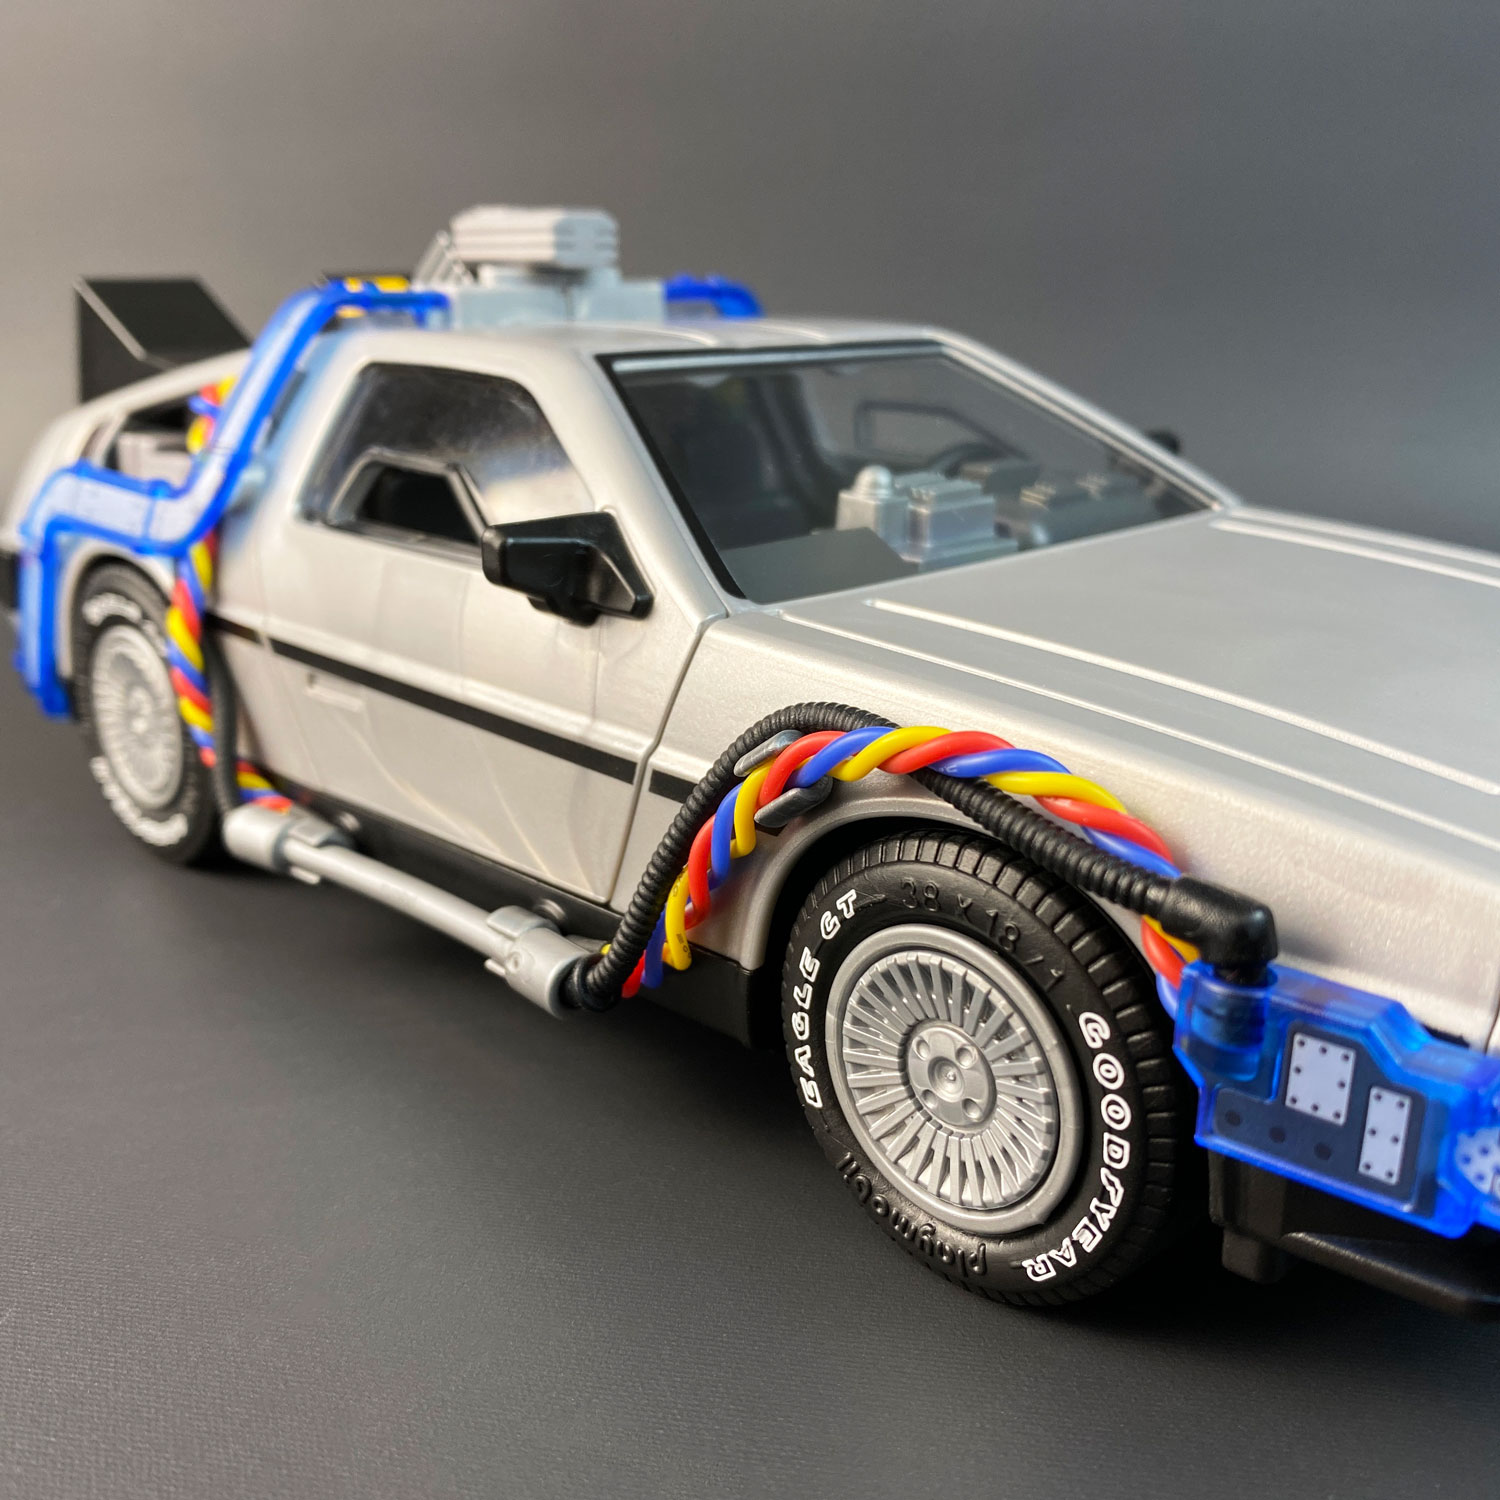 Playmobil DeLorean with Flux Wires by Mike Lane mods